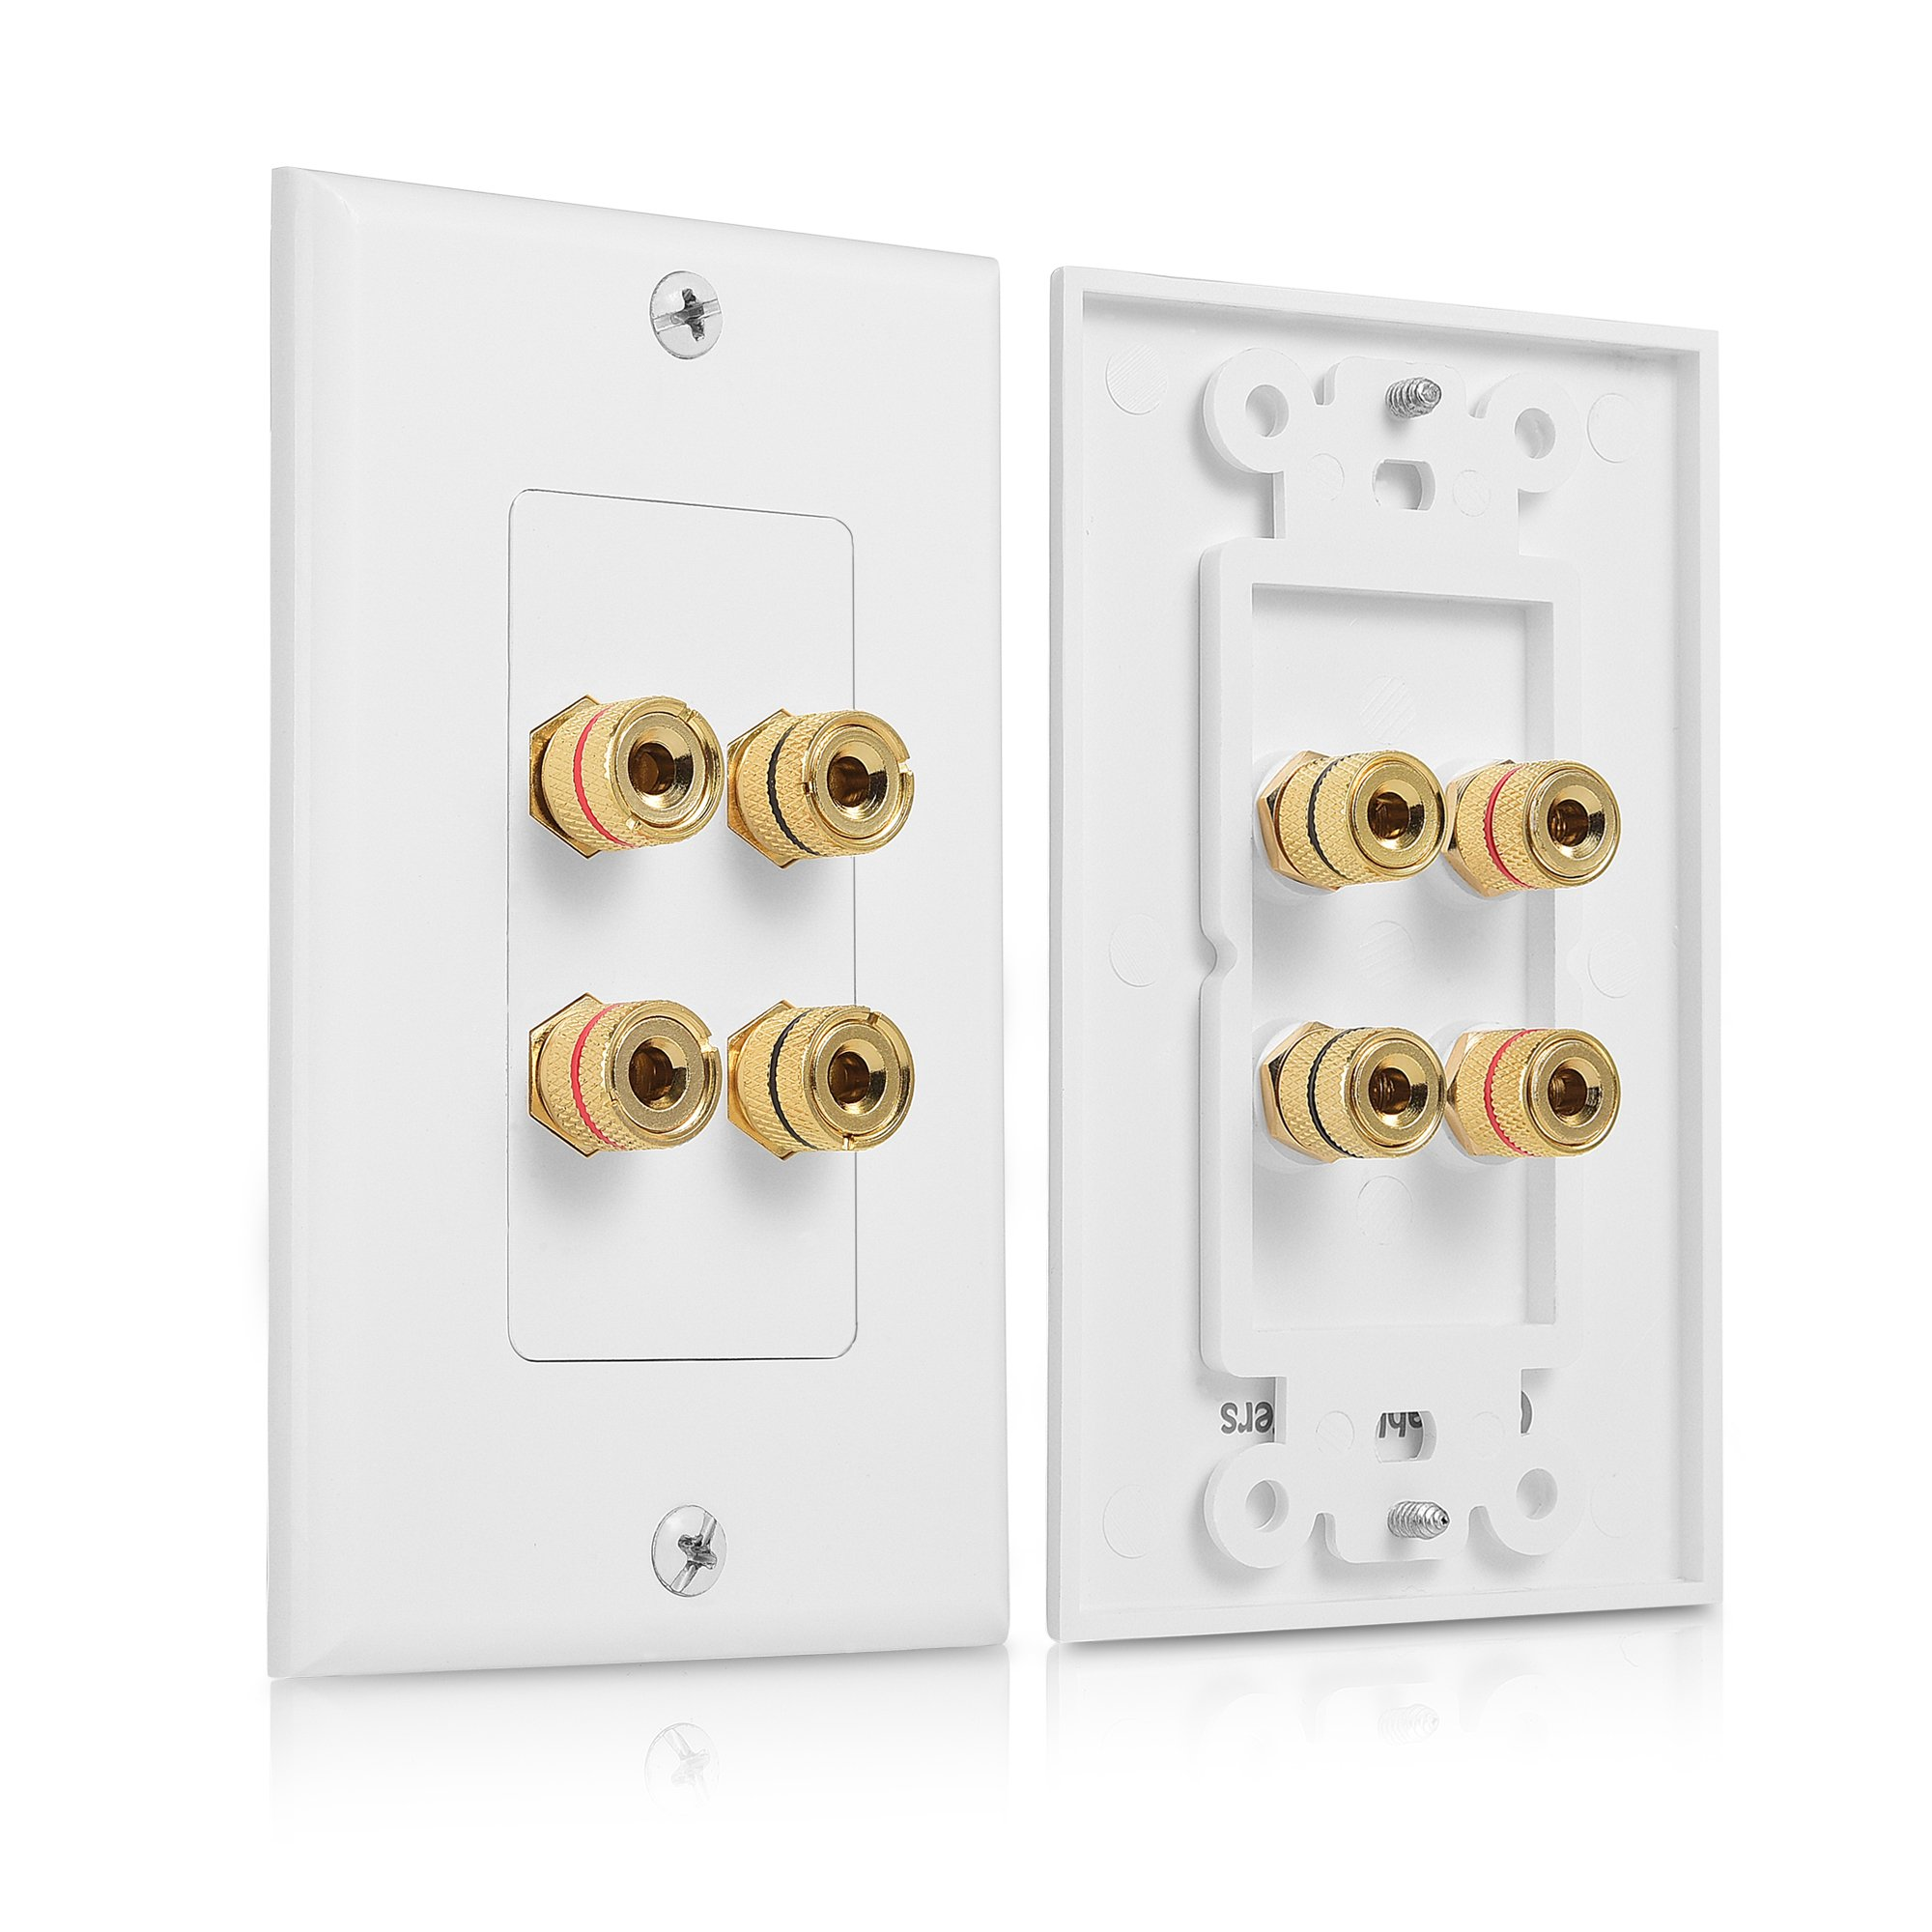 Cable Matters 2-Pack Speaker Wire Wall Plate (Speaker Wall Plate / Banana Plug Wall Plate) for 2 Speaker in White